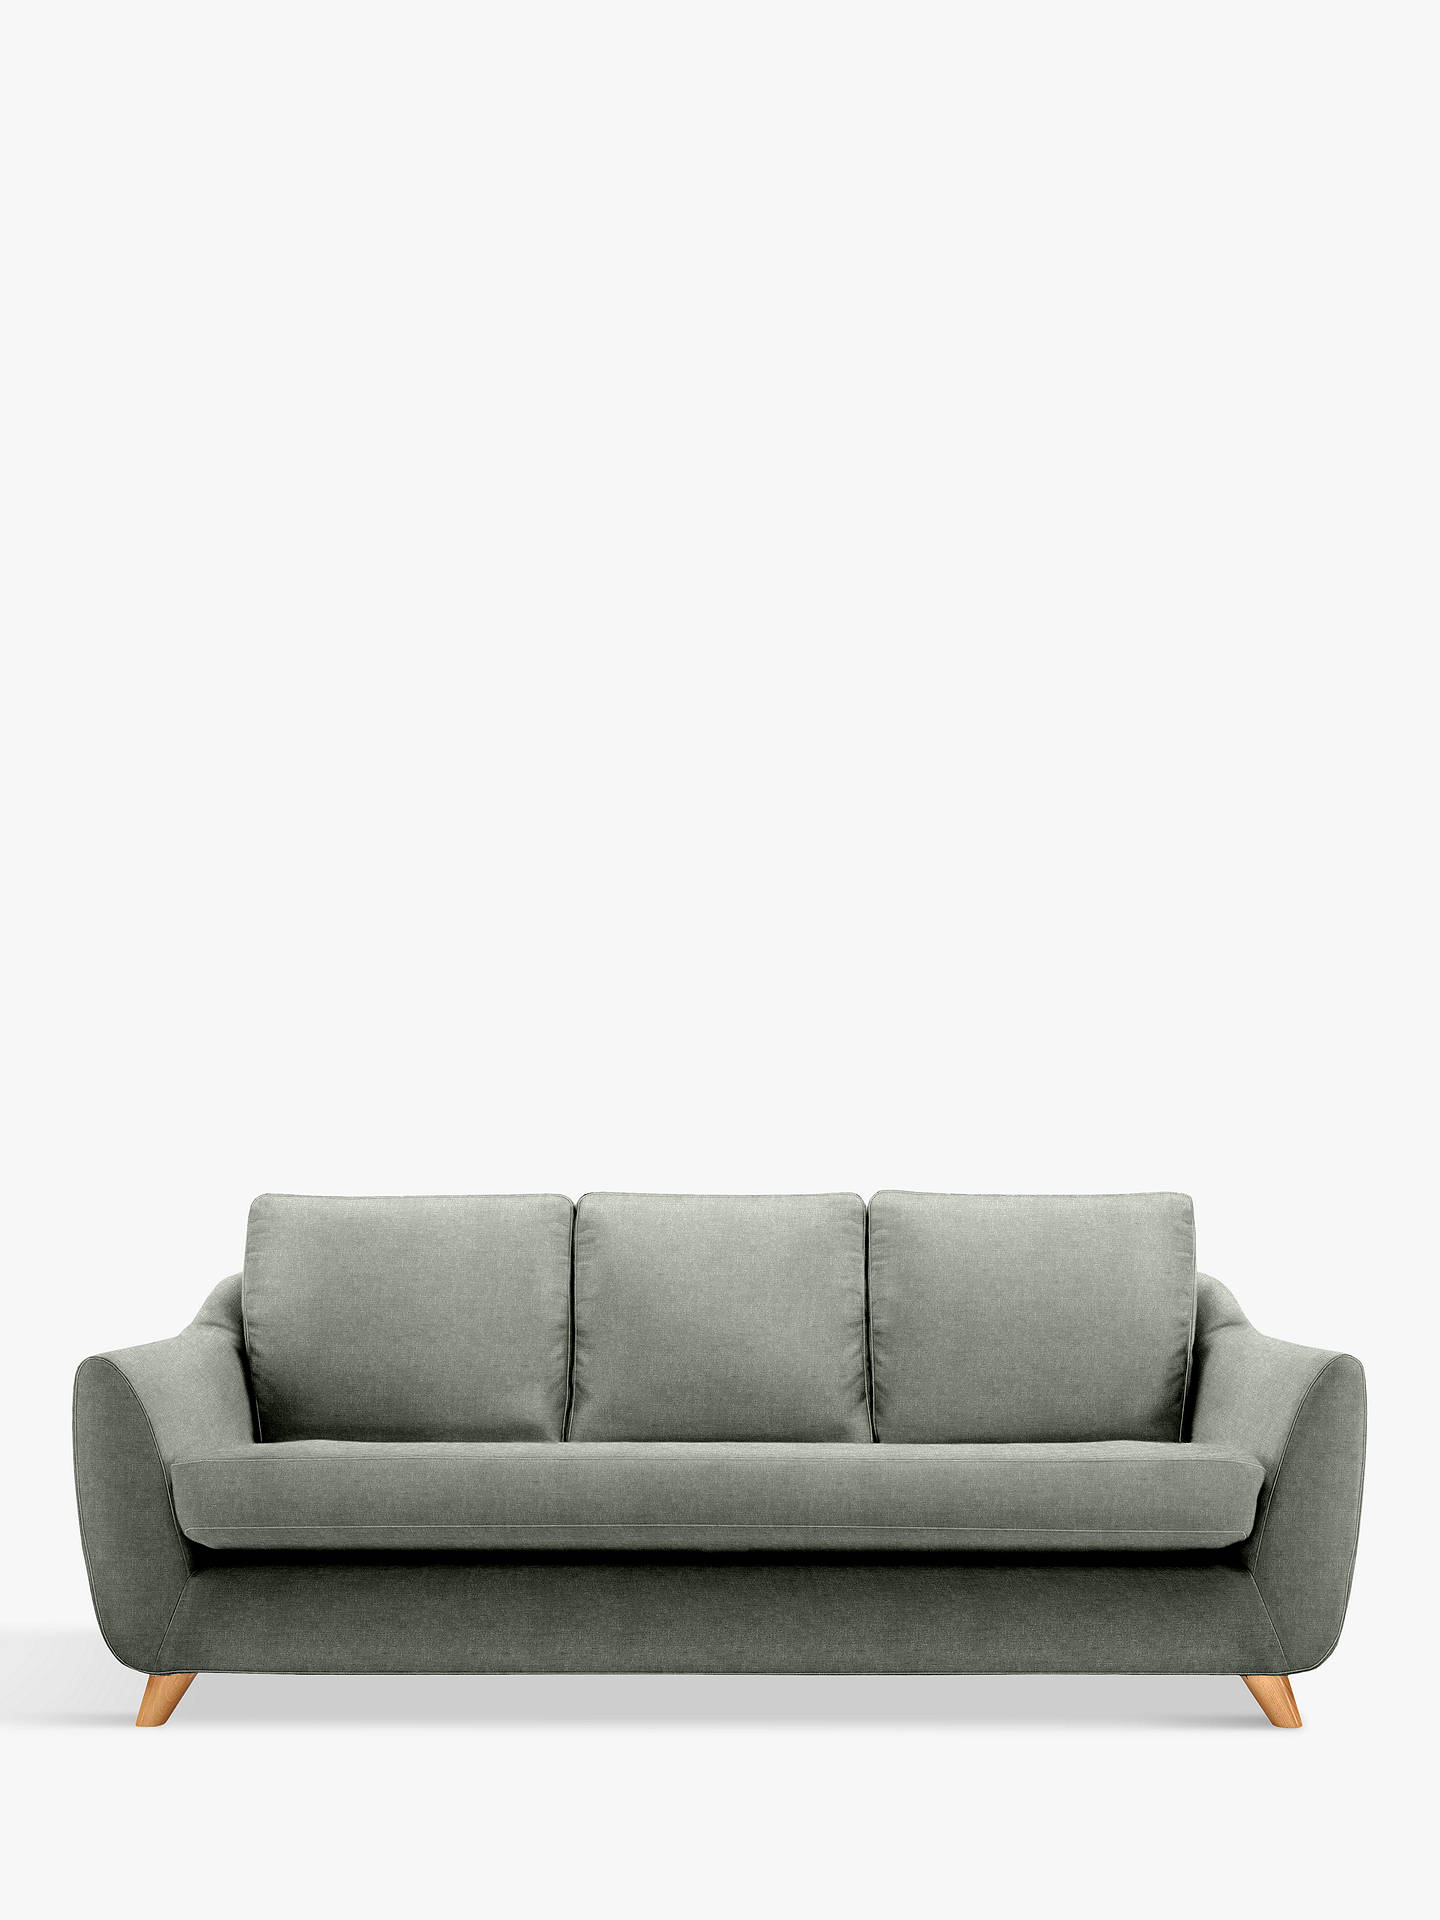 Buy G Plan Vintage The Sixty Seven Large 3 Seater Sofa, Deluxe Mouse Velvet Online at johnlewis.com